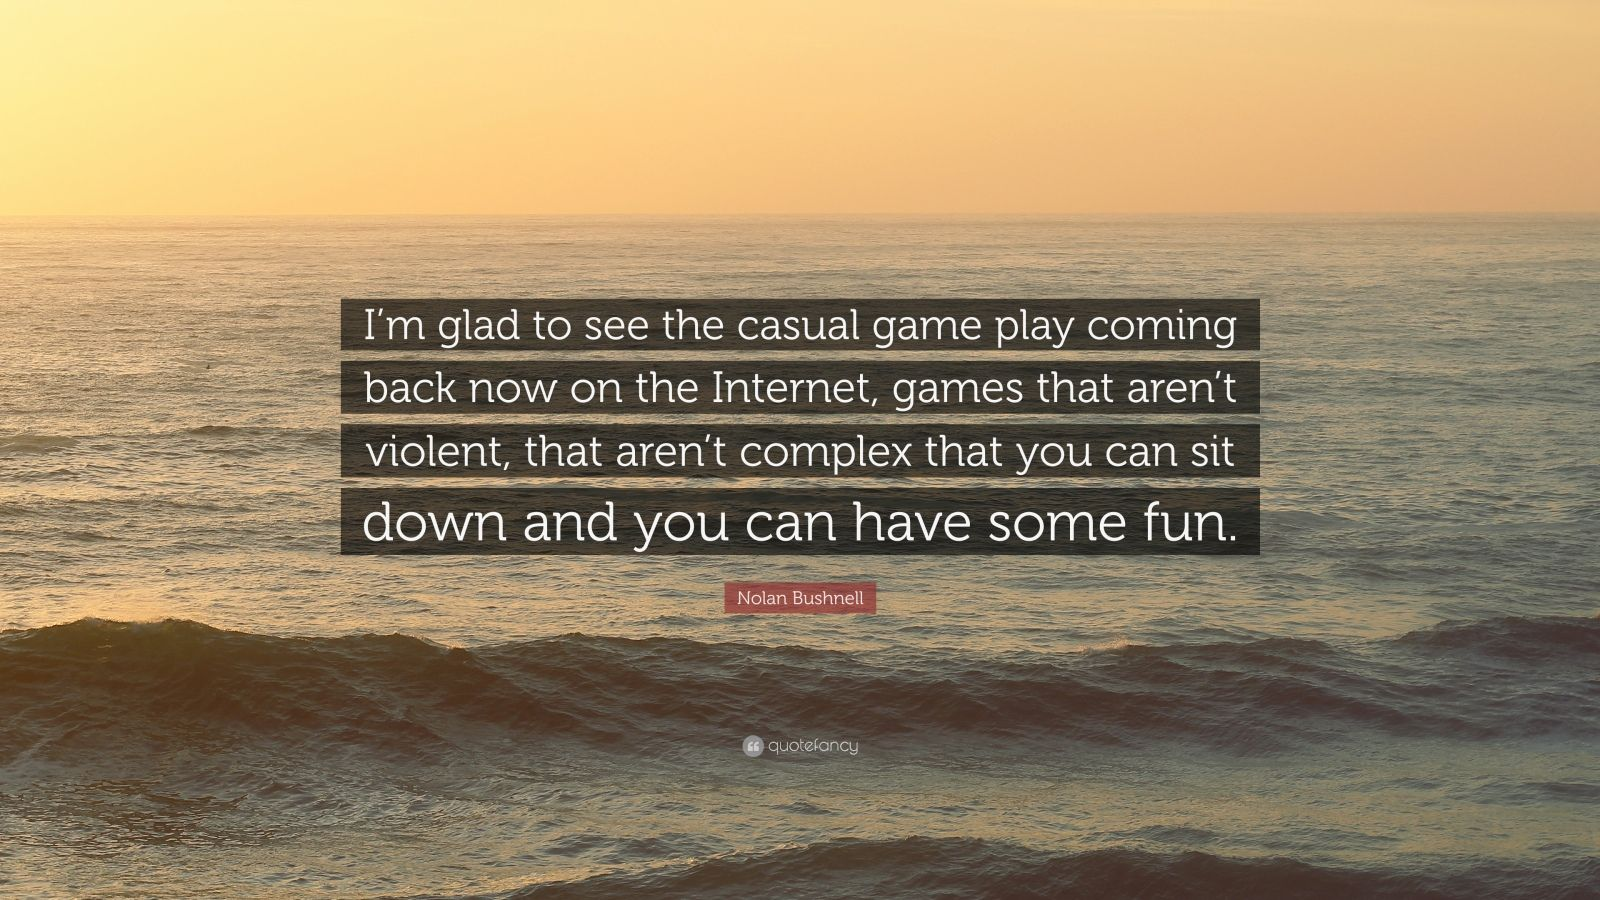 """Nolan Bushnell Quote: """"I'm glad to see the casual game play coming back now on the Internet, games that aren't violent, that aren't complex that you can sit down and you can have some fun."""""""